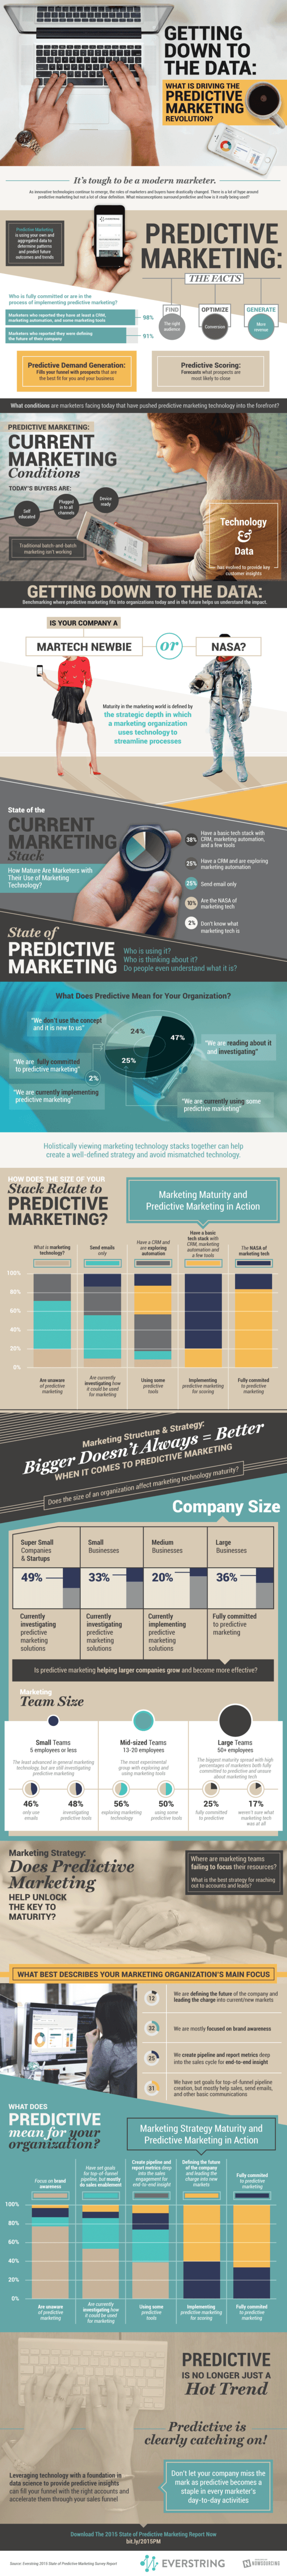 Predictive Marketing Infographic